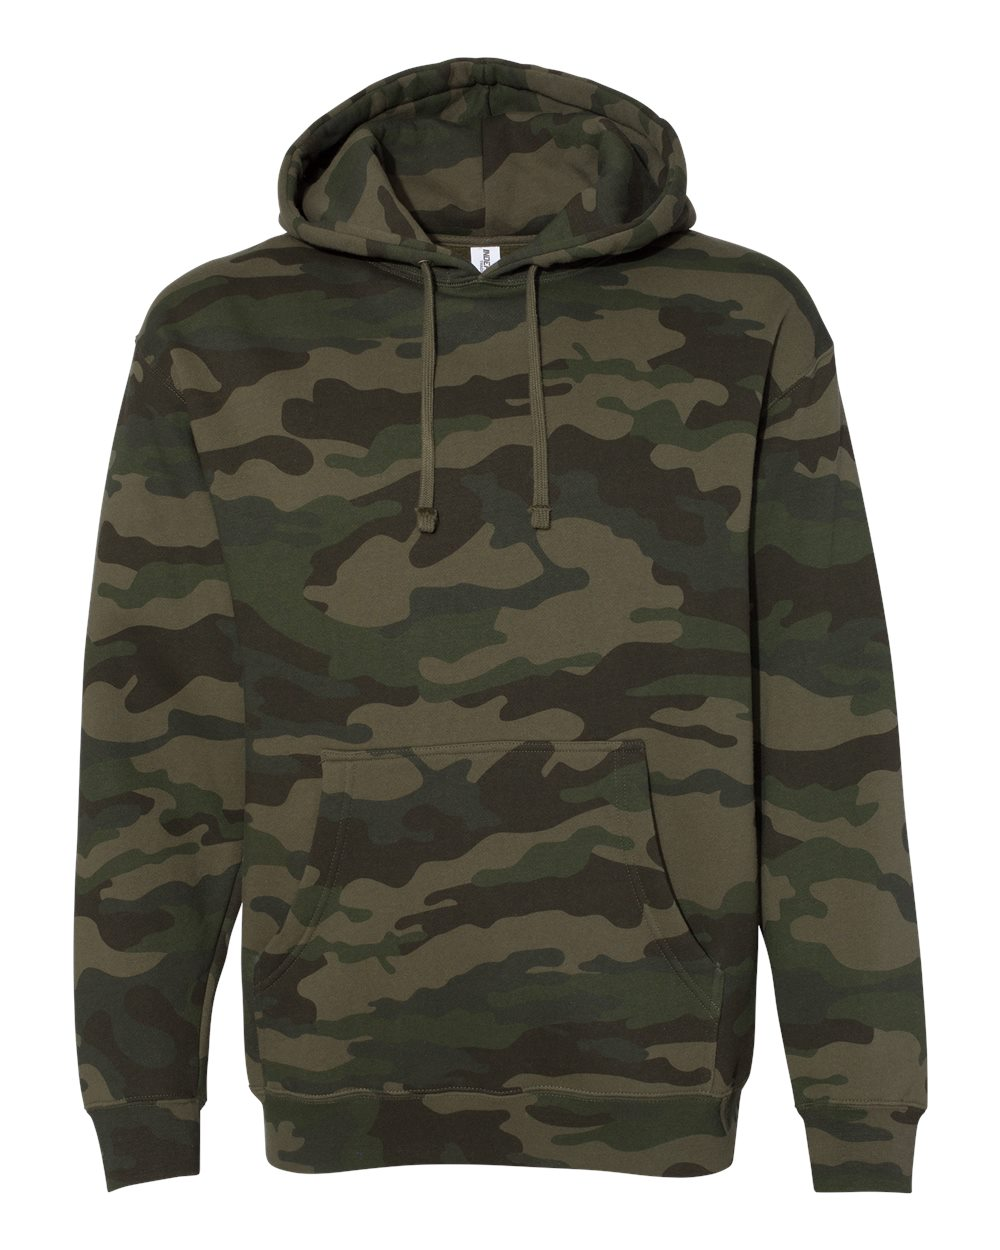 Independent-Trading-Co-Mens-Hooded-Pullover-Sweatshirt-IND4000-up-to-3XL miniature 36